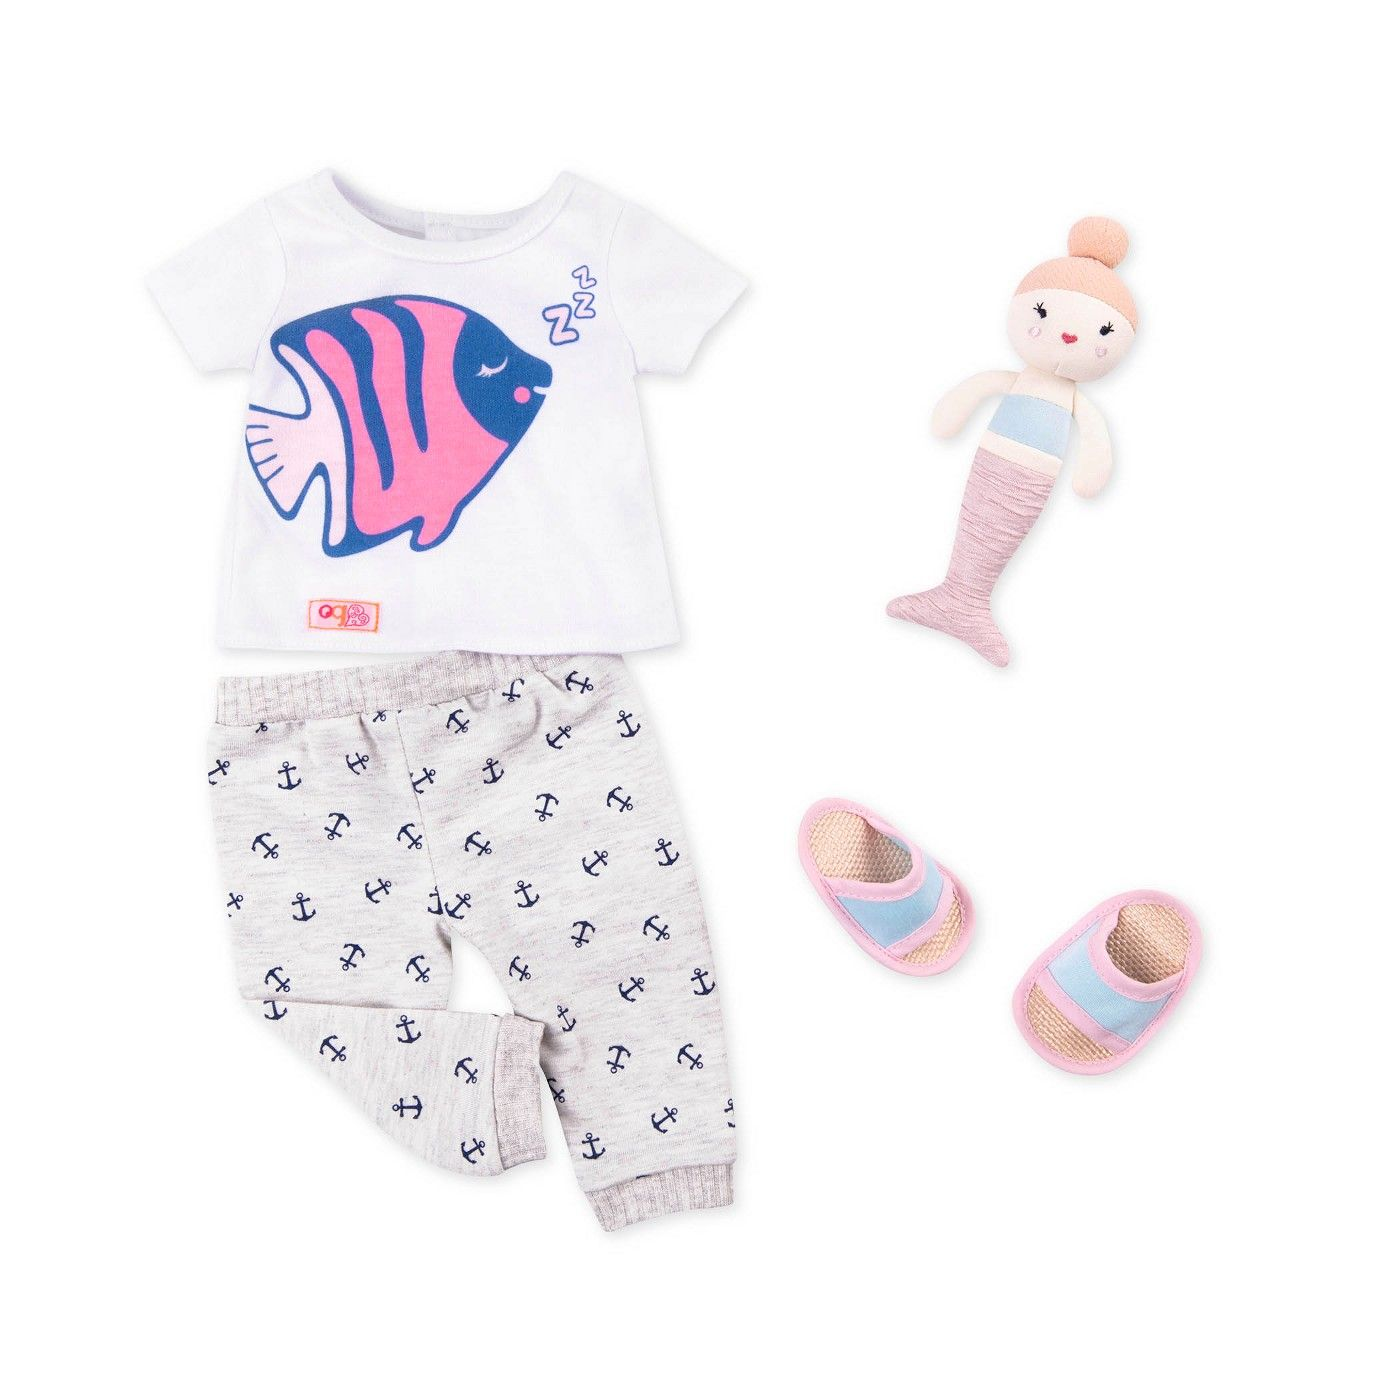 Clothes for 18/'/' American Doll Our Generation Pajamas Shoes Outfits Dress